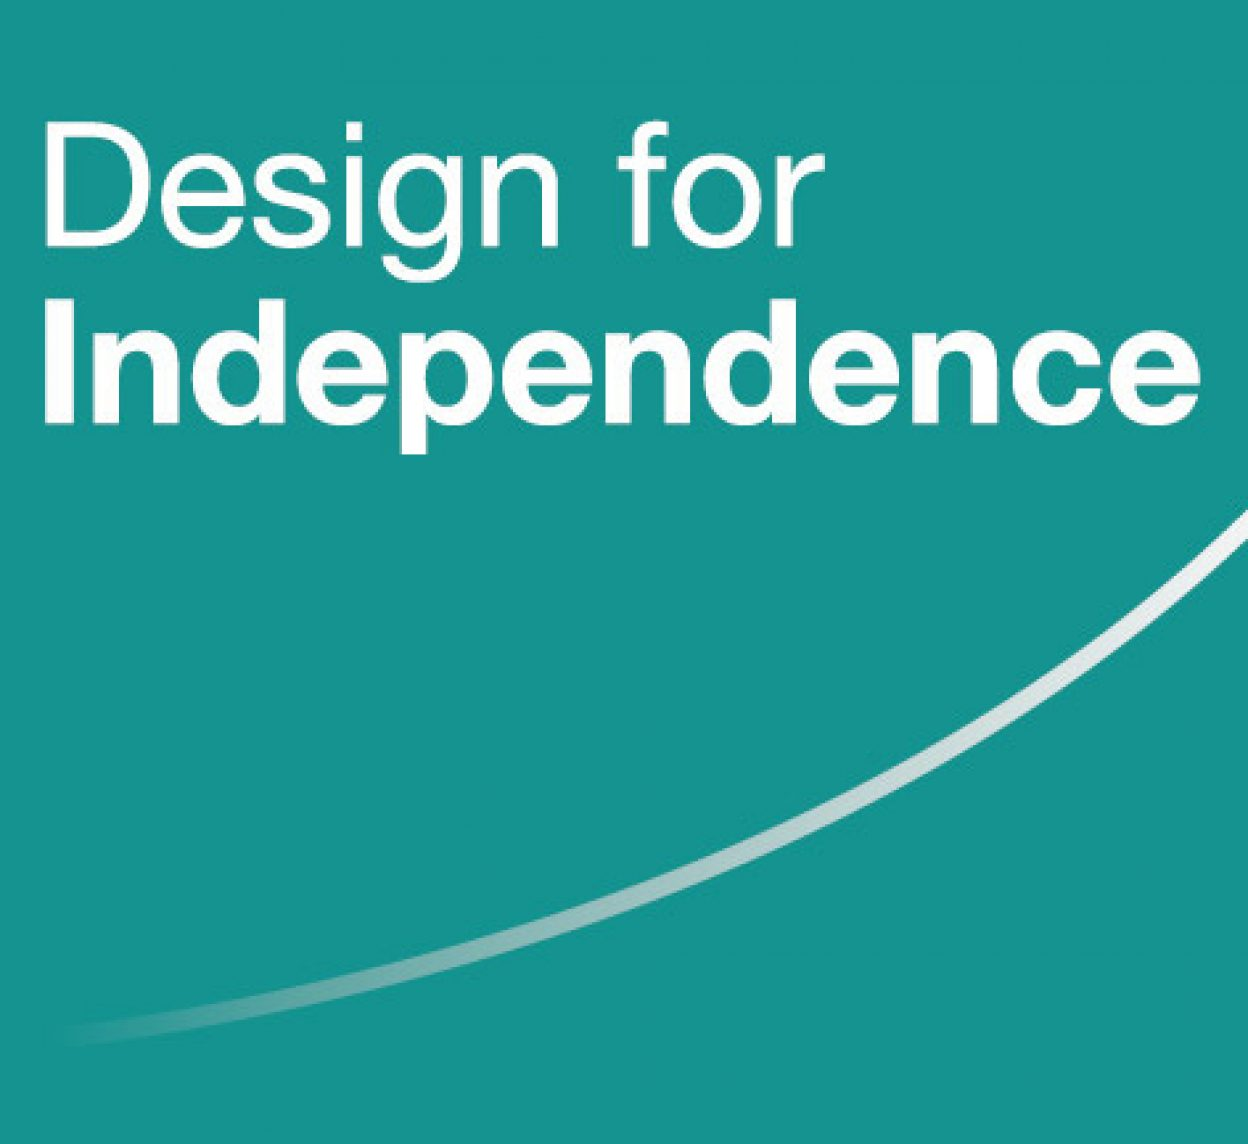 Design for Independence